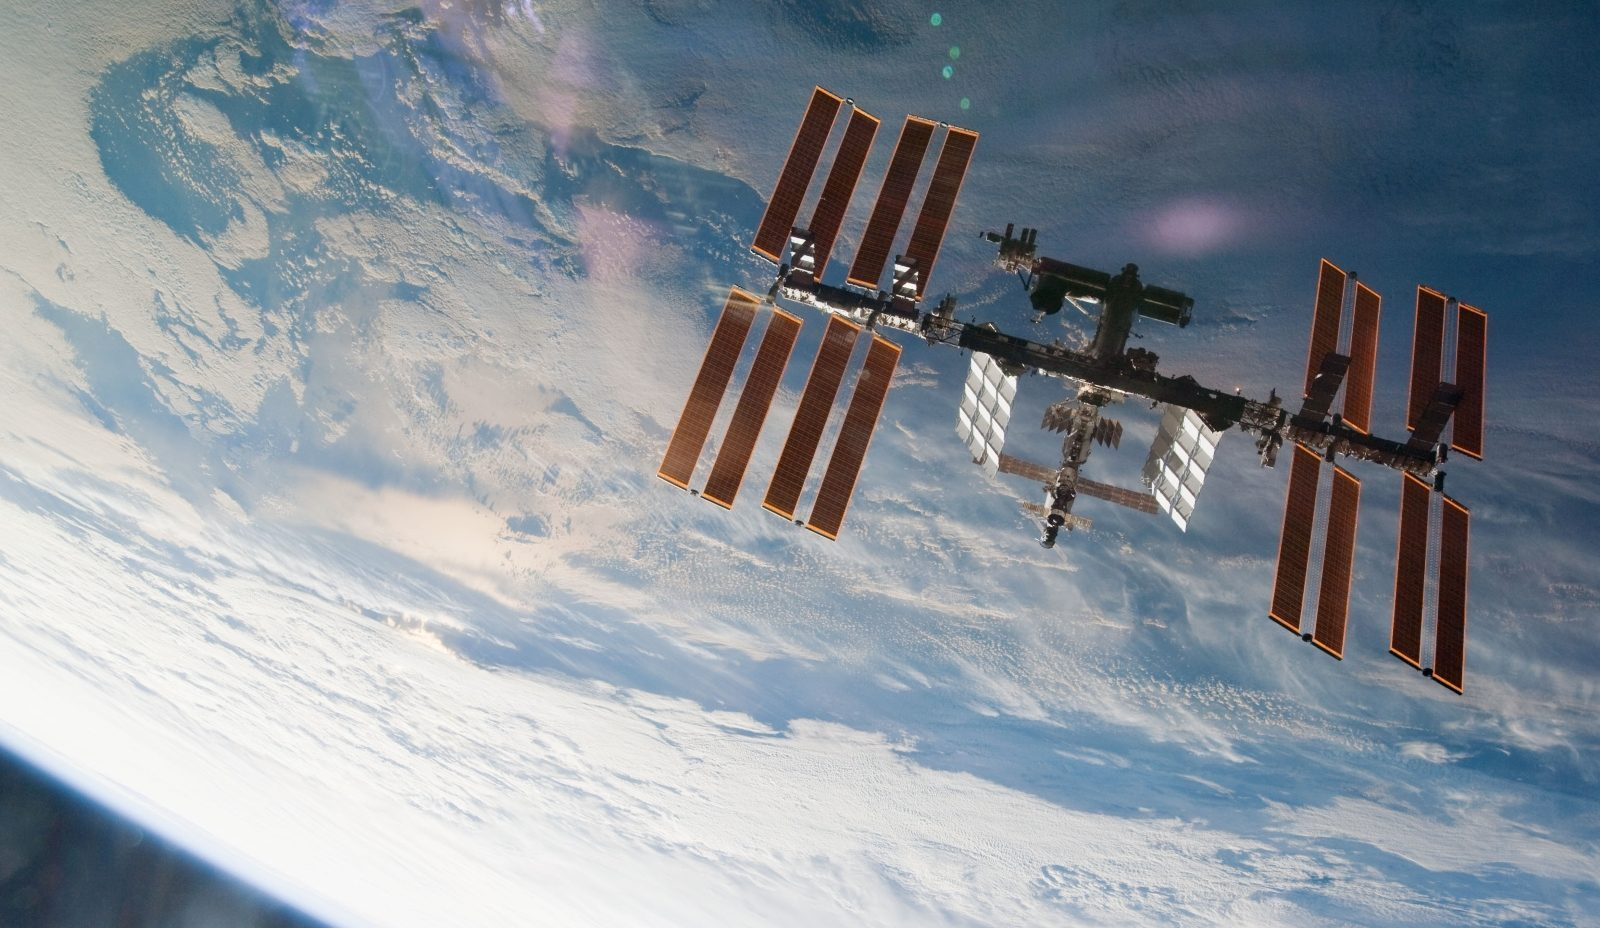 Leak detected aboard space station, but NASA says astronauts are safe